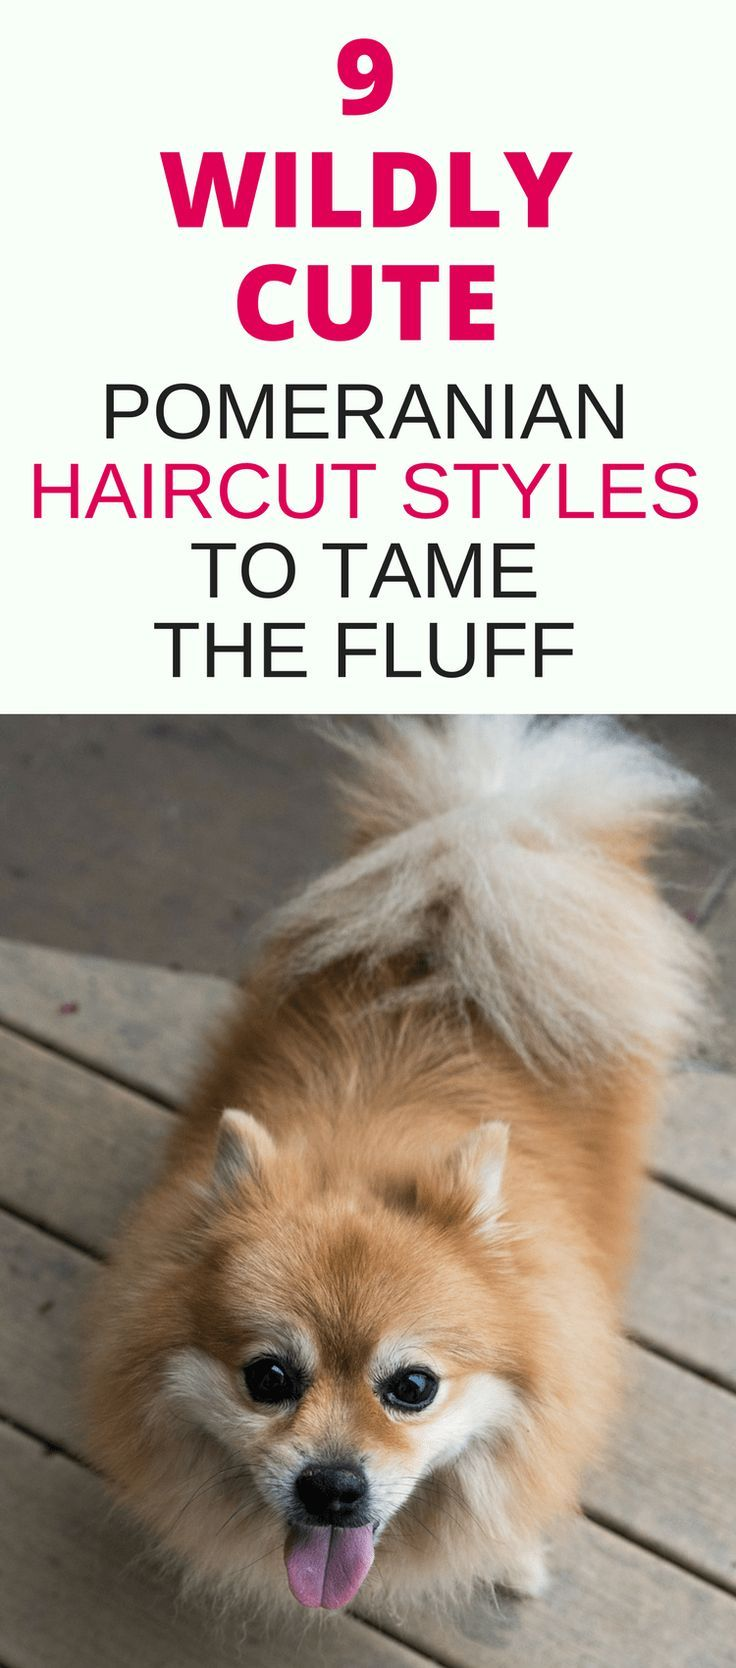 pomeranian haircut style 800 best puppies cute animals images on pinterest 8463